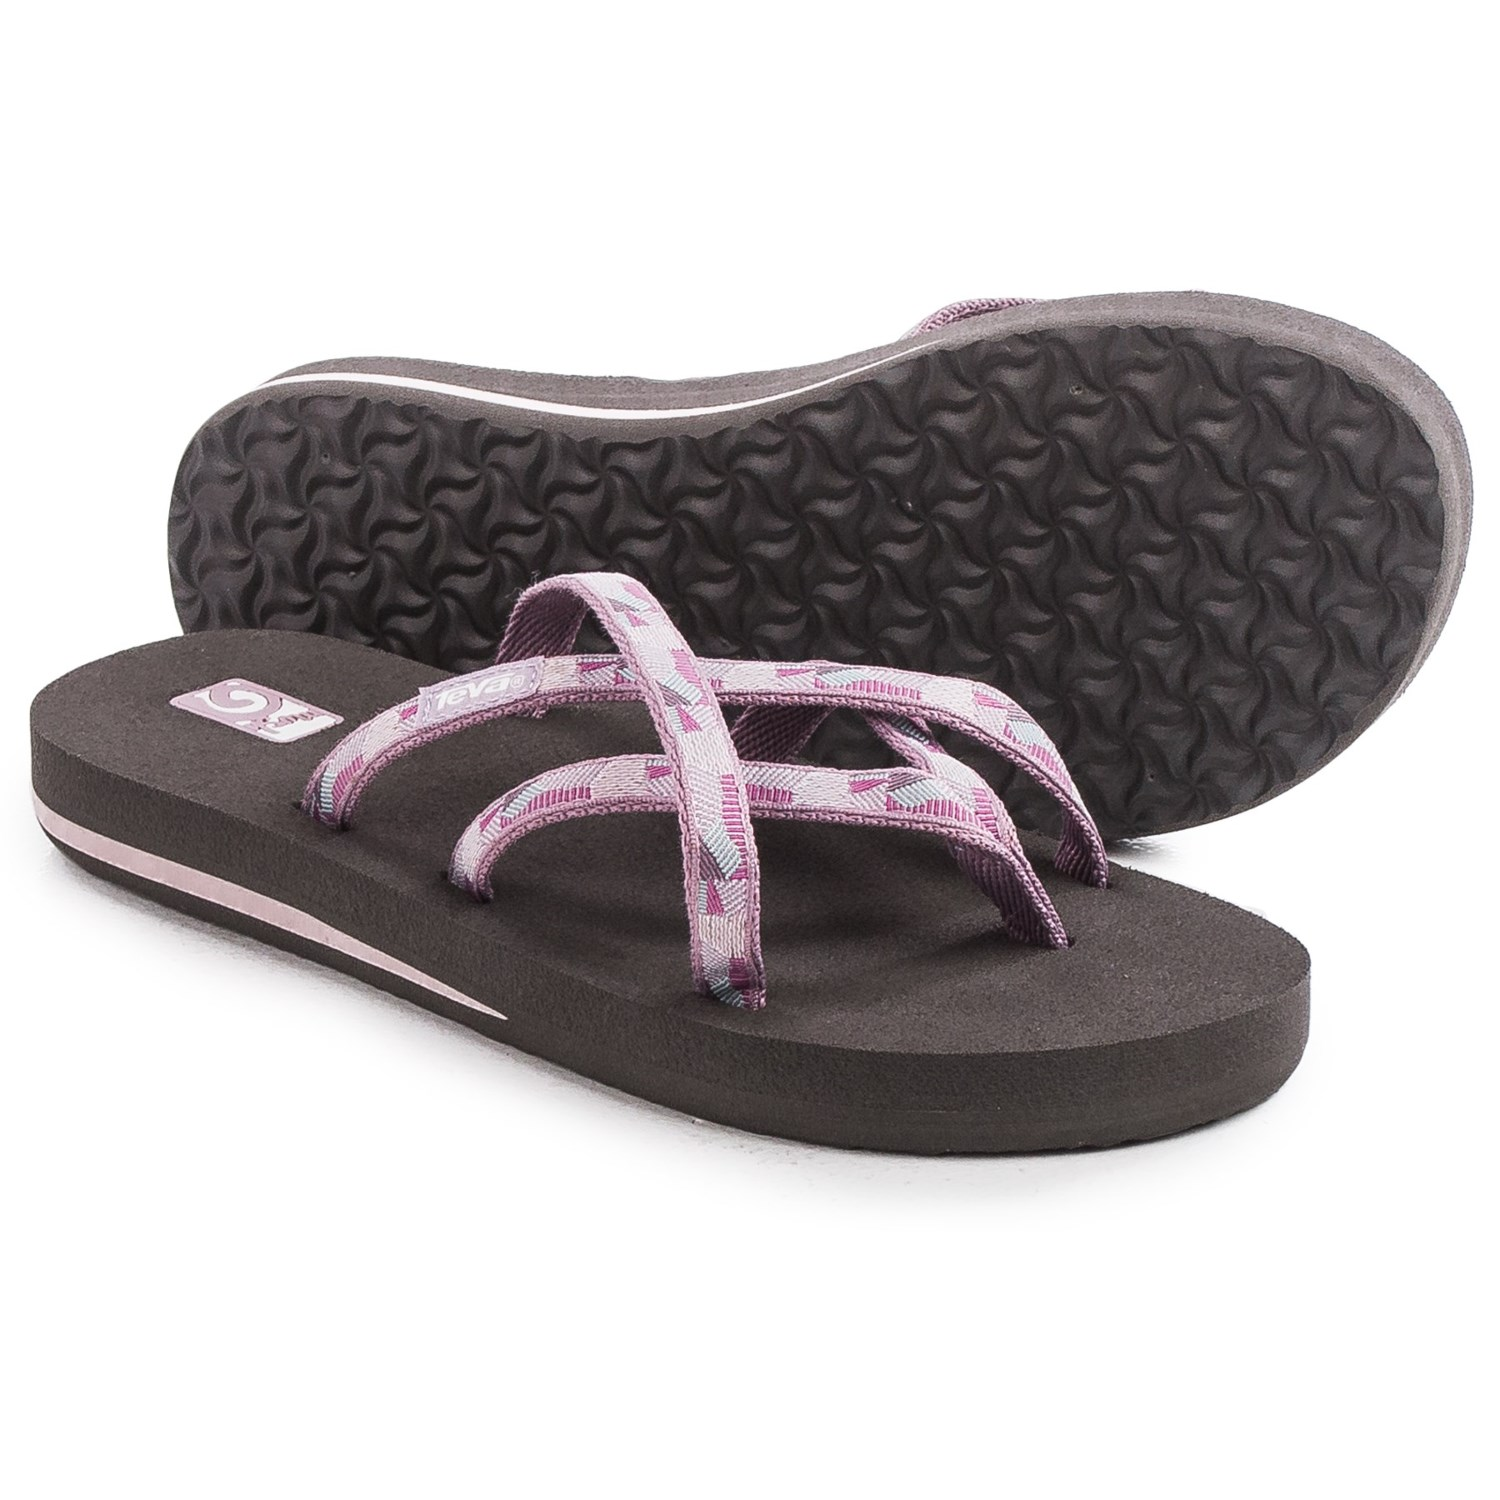 teva olowahu flip flops for women   save 64